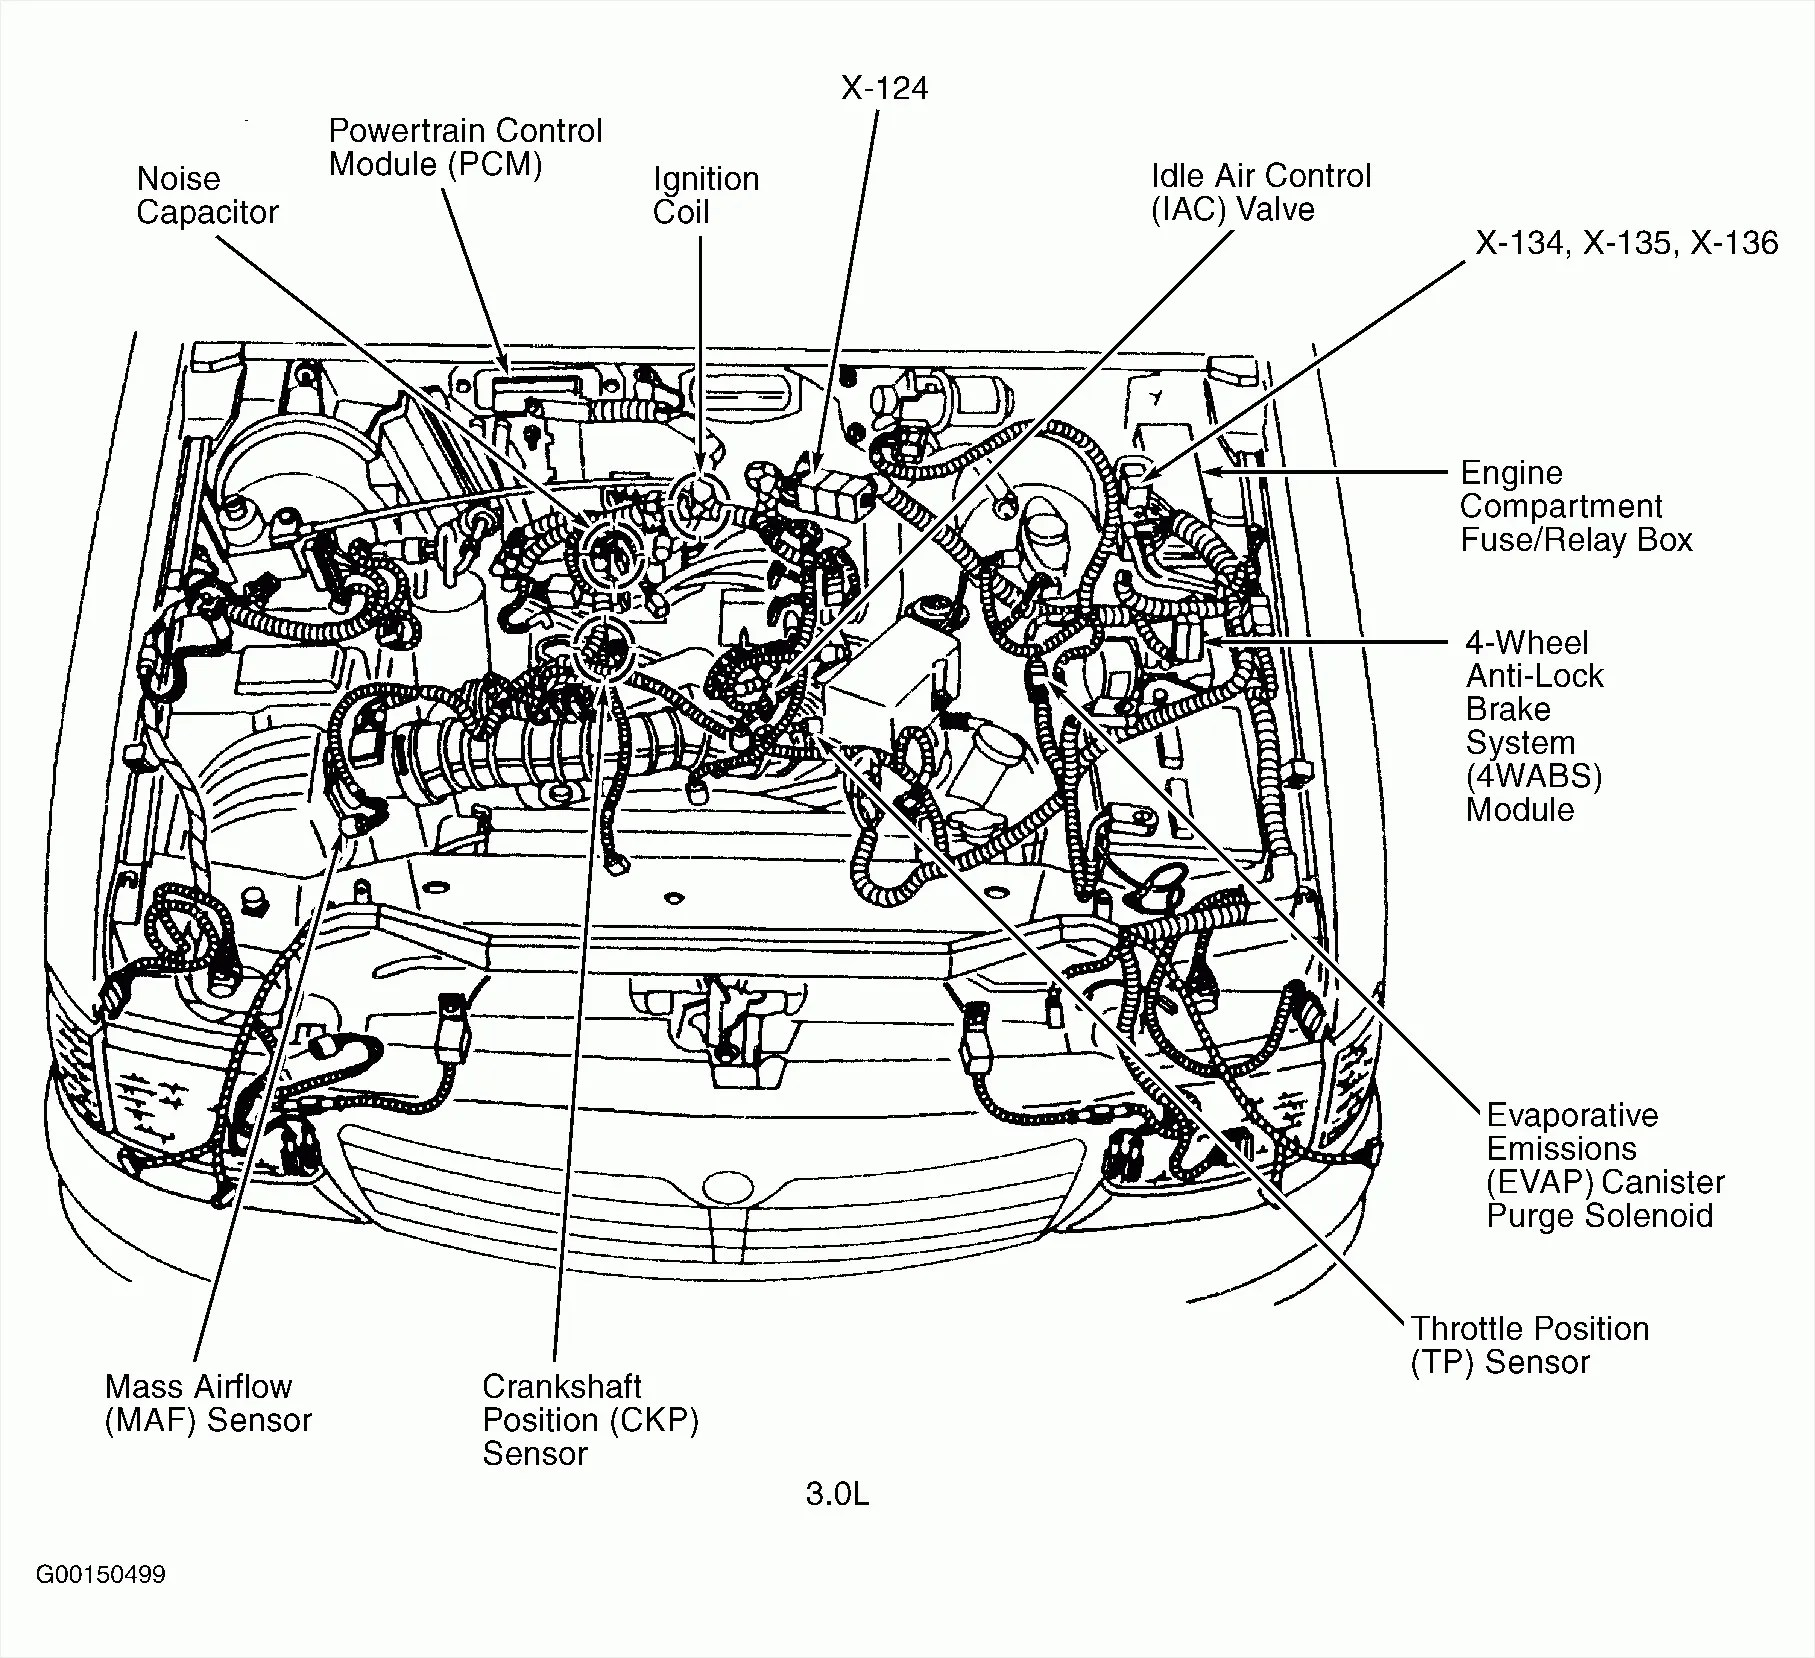 hight resolution of 1987 monte carlo engine diagram wiring library rh 96 evitta de 2004 monte carlo transmission diagram 1976 monte carlo wiring diagram